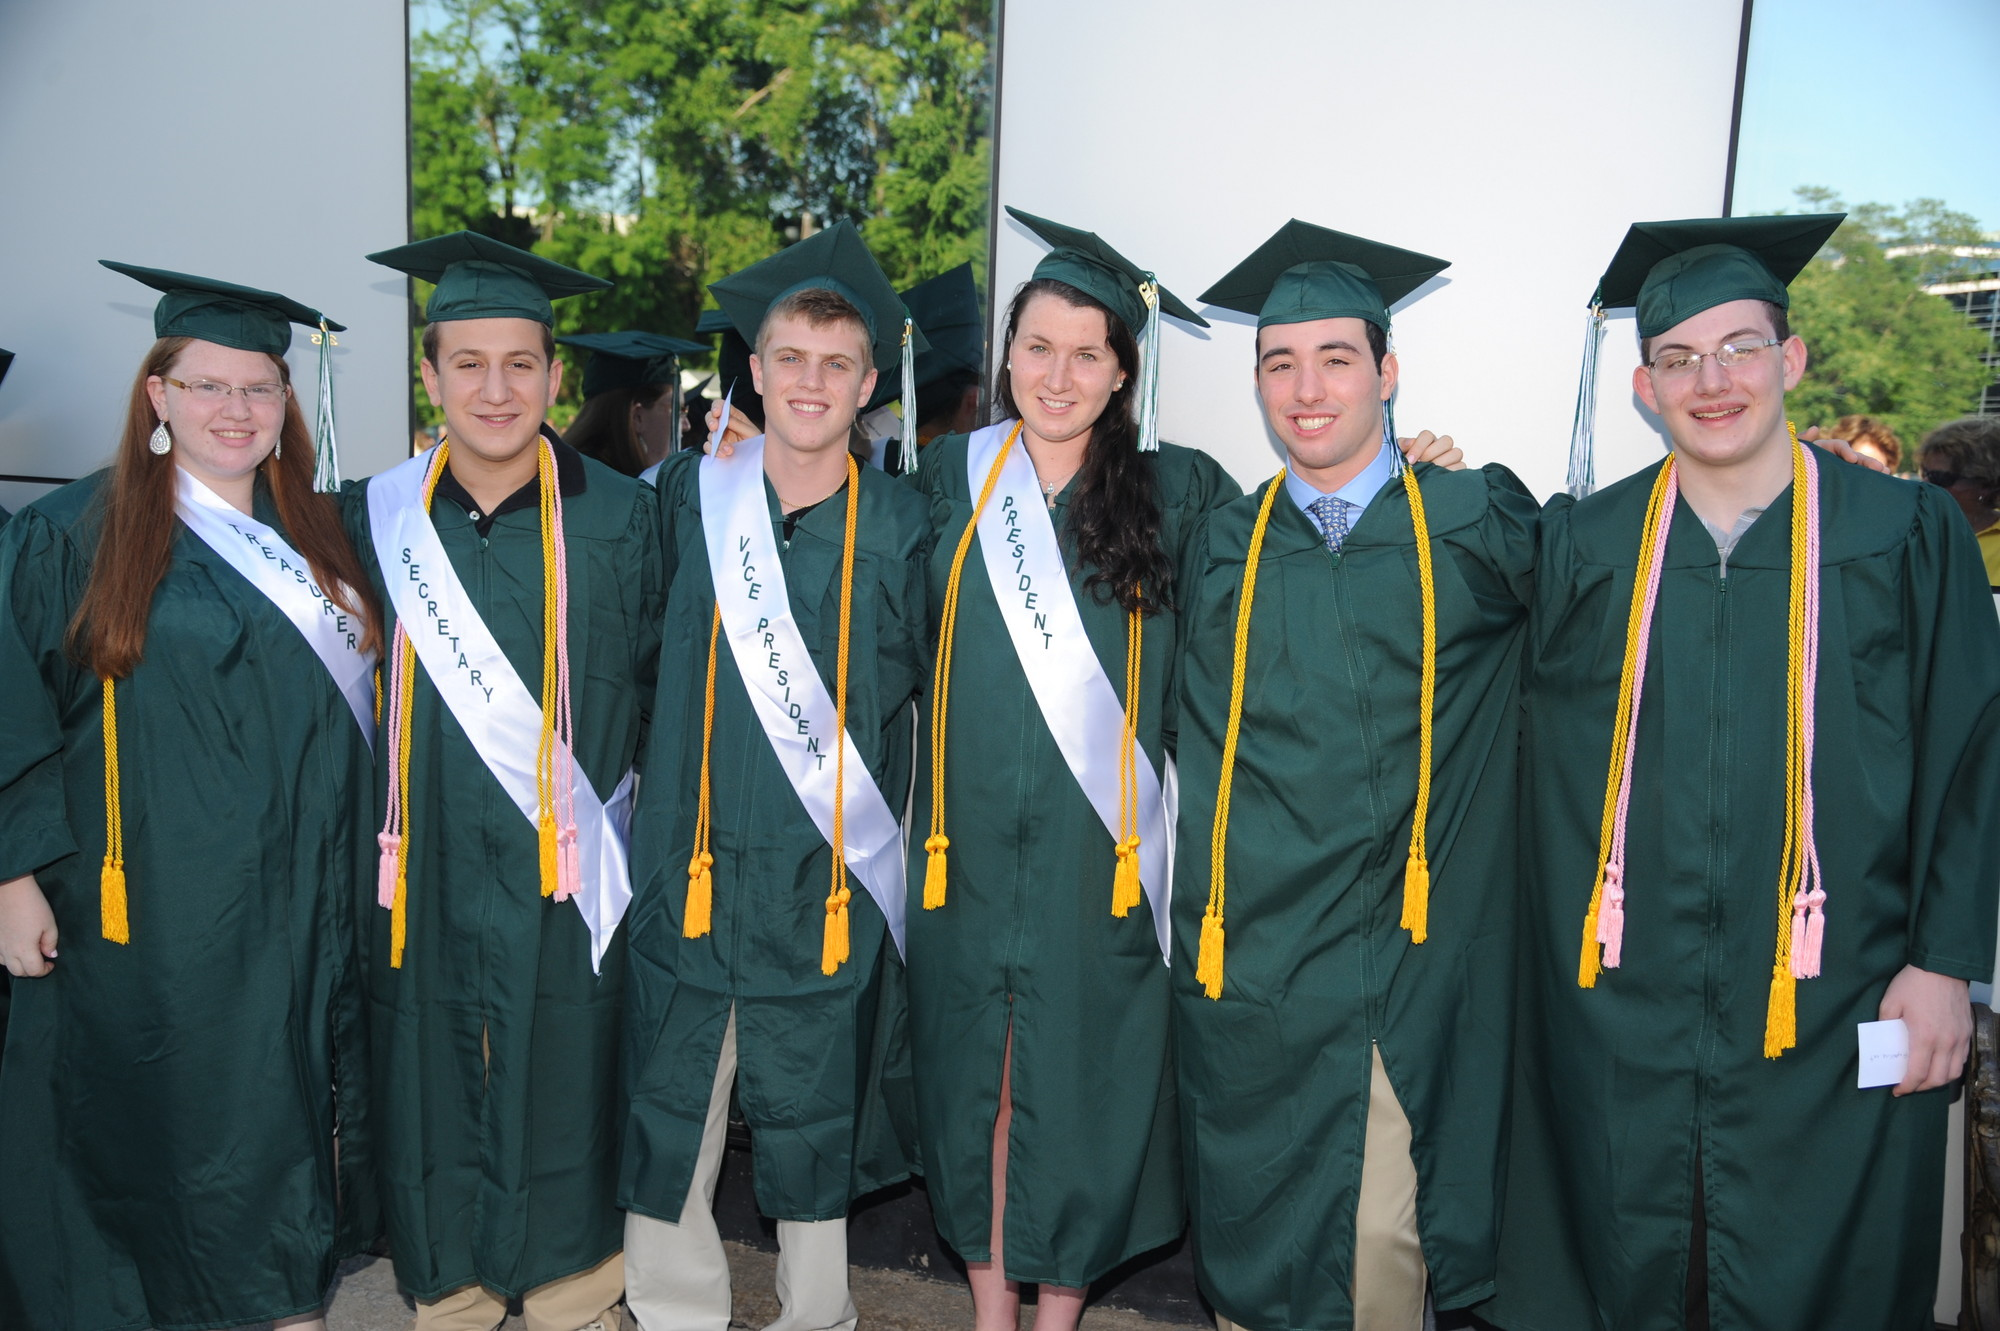 Rachel Szteinberg, class treasurer, Dan Bertan, class secretary, Jason Gura, class vice president, Kerri Stalzer, class president, Jordan Liebman, salutatorian, and Eric Fegan, valedictorian, led the Kennedy class of 2013.